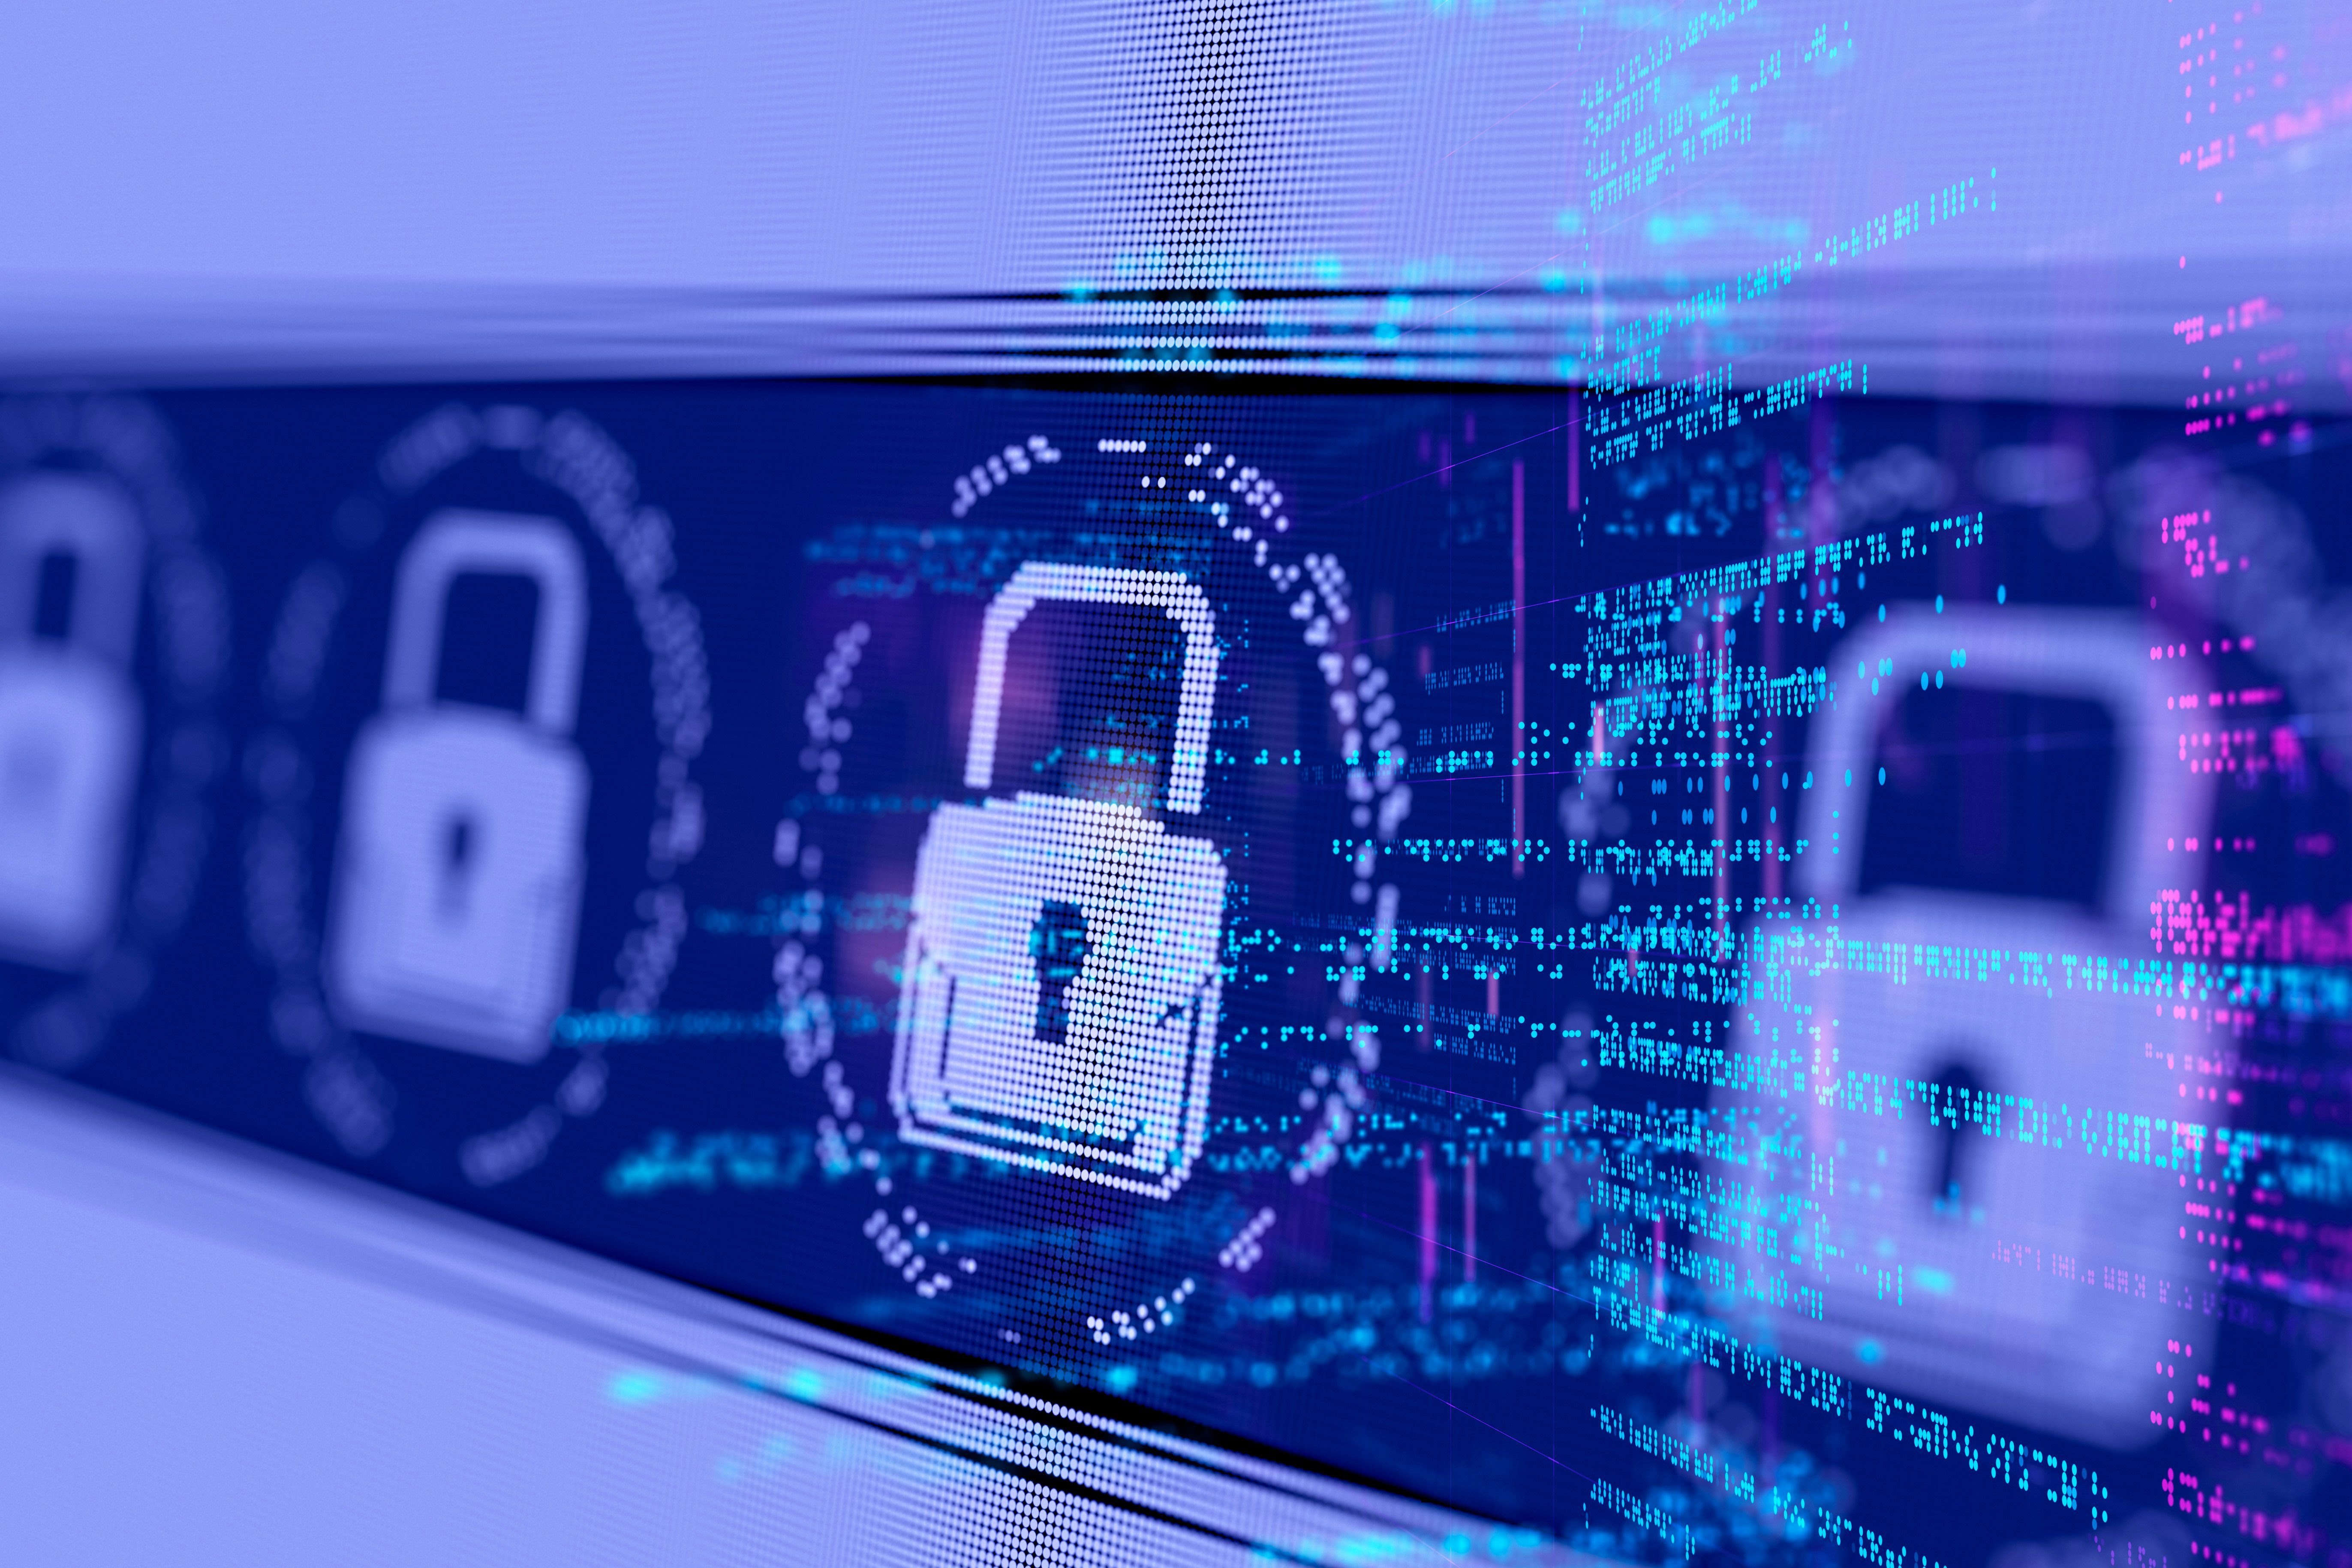 Abstract Internet Network Cyber Security concept